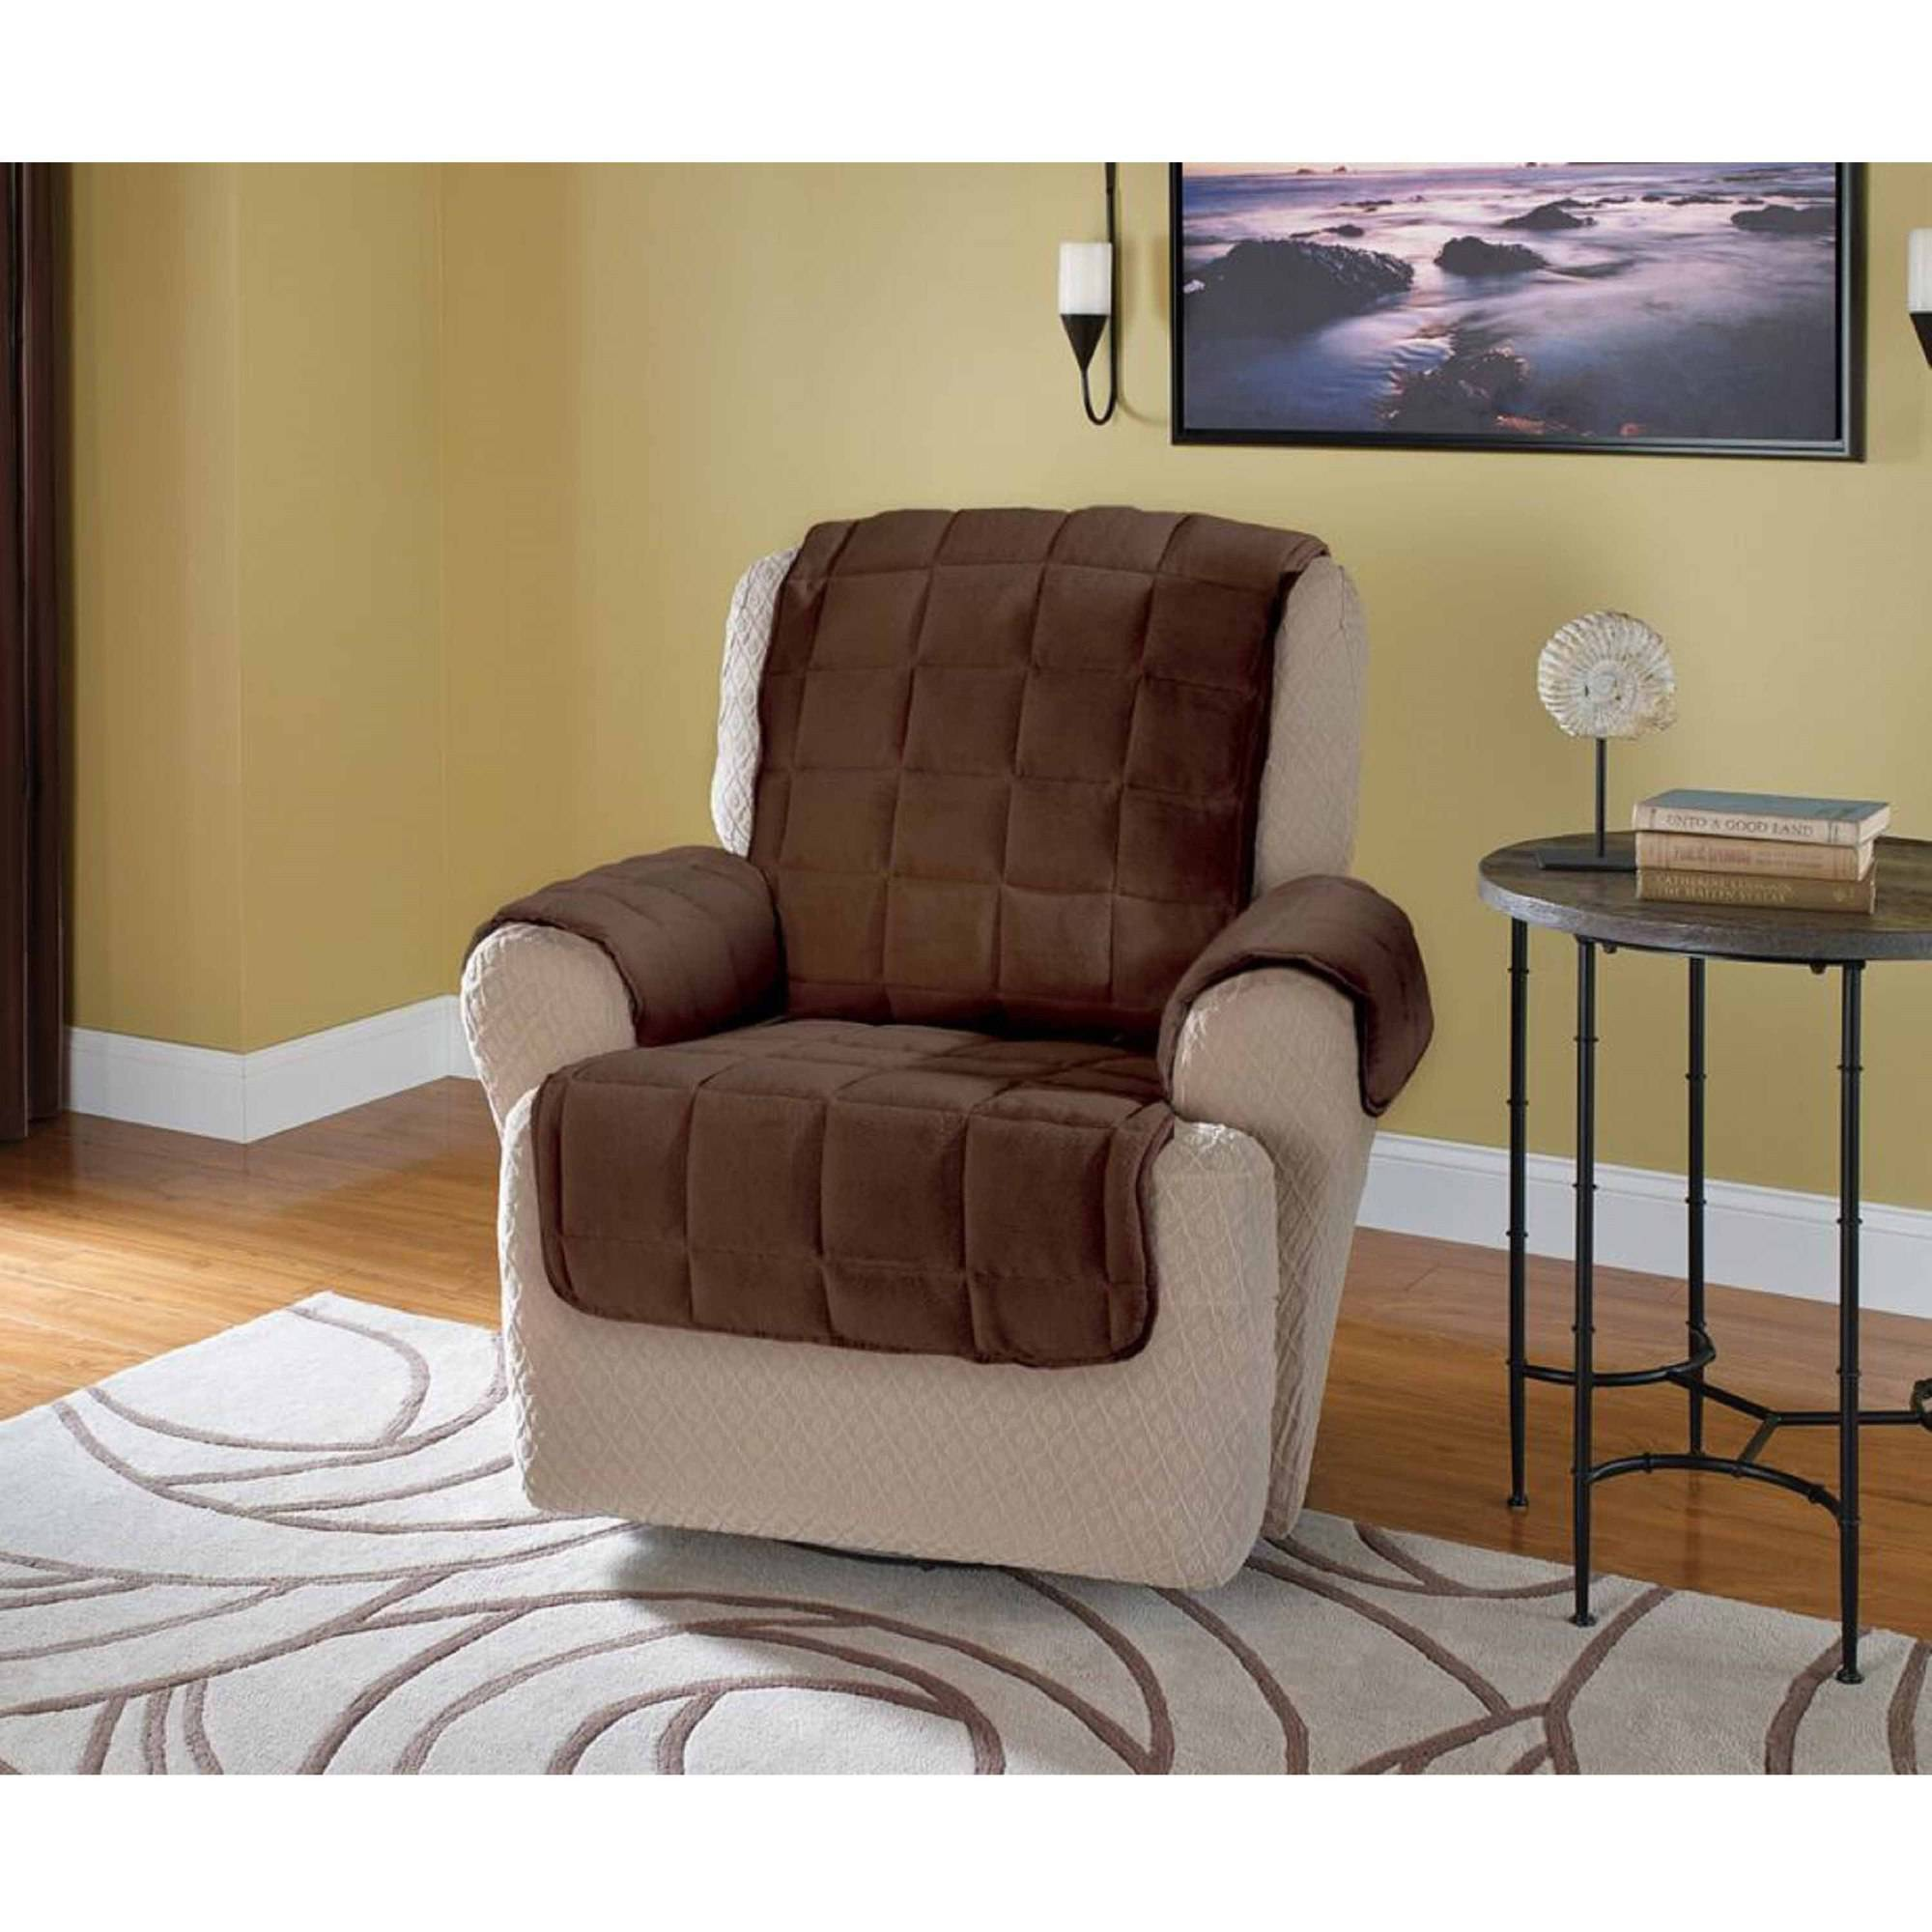 Innovative Textile Solutions Plush Recliner or Wing Chair Protector  sc 1 st  Walmart & Innovative Textile Solutions Plush Recliner or Wing Chair ... islam-shia.org